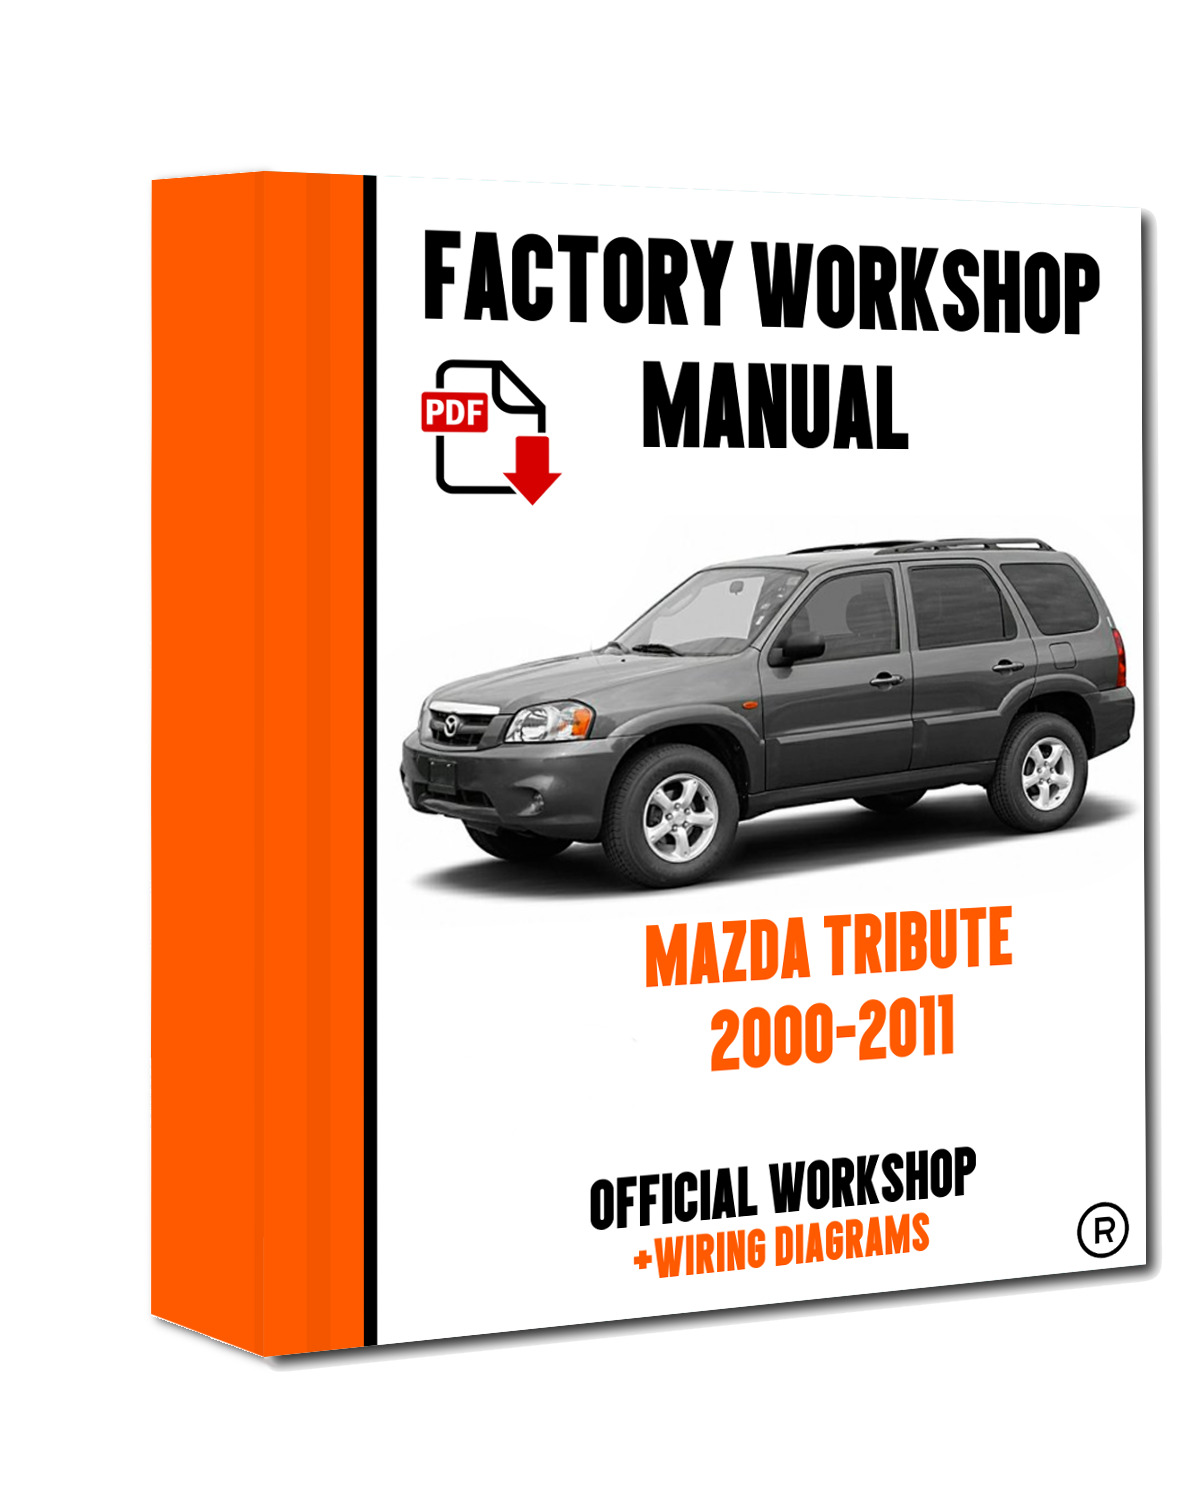 OFFICIAL WORKSHOP Manual Service Repair Mazda Tribute 2000 - 2011 1 of  5FREE Shipping ...